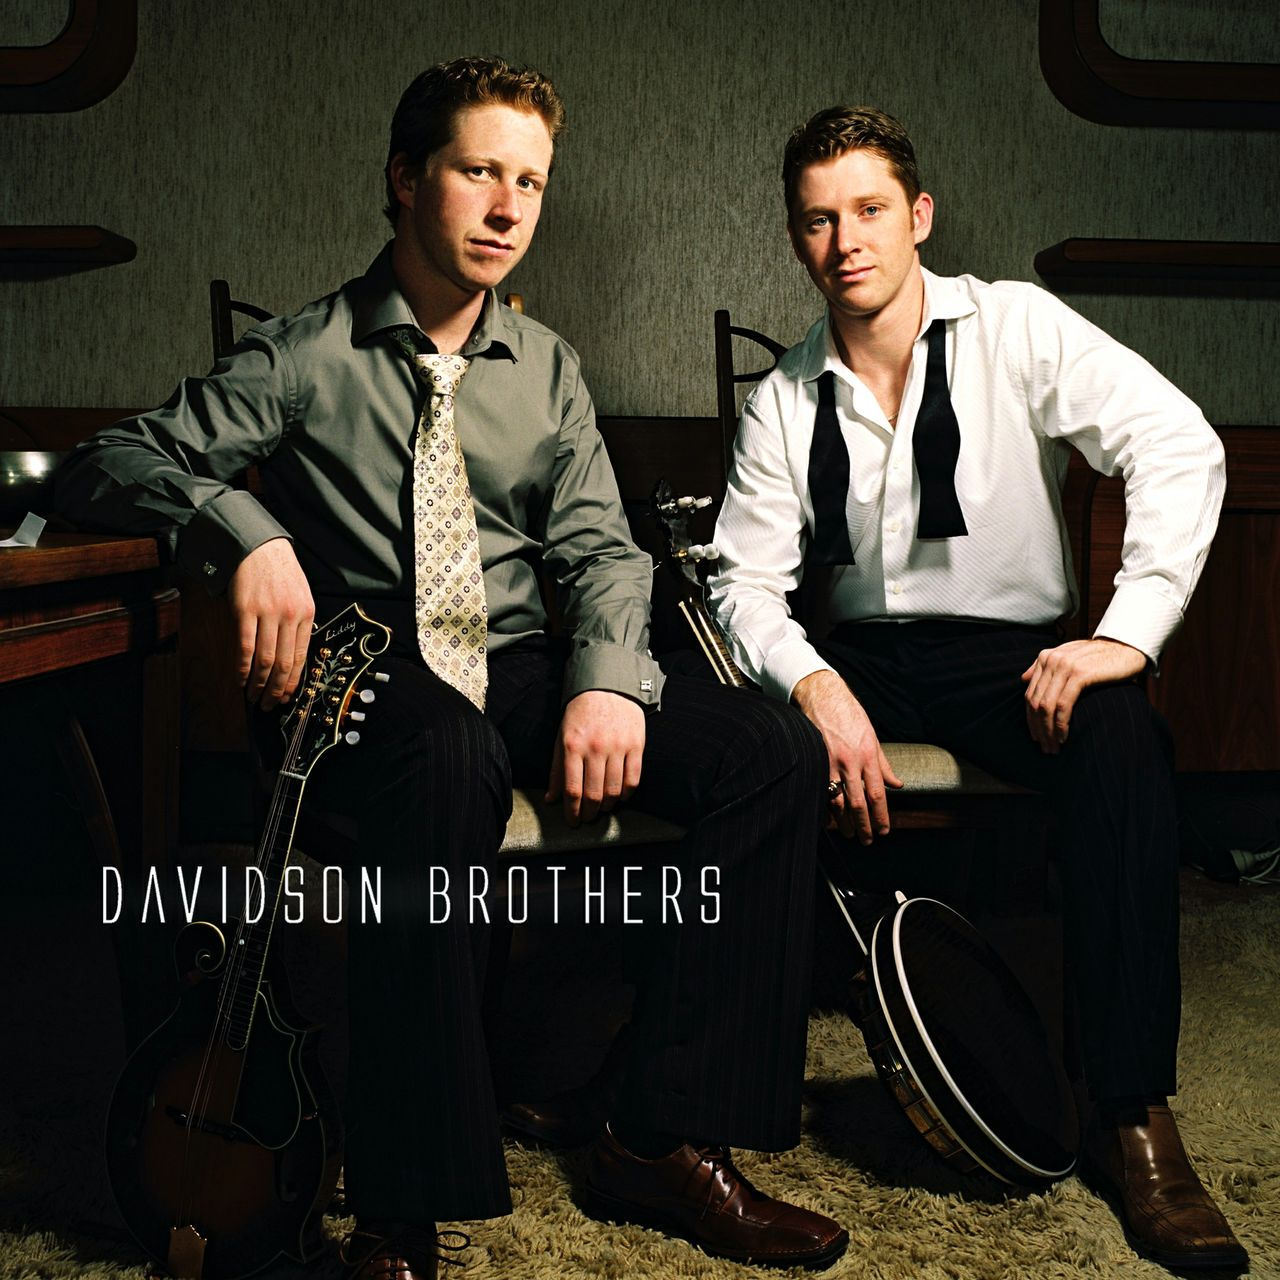 Davidson Brothers - MP3s